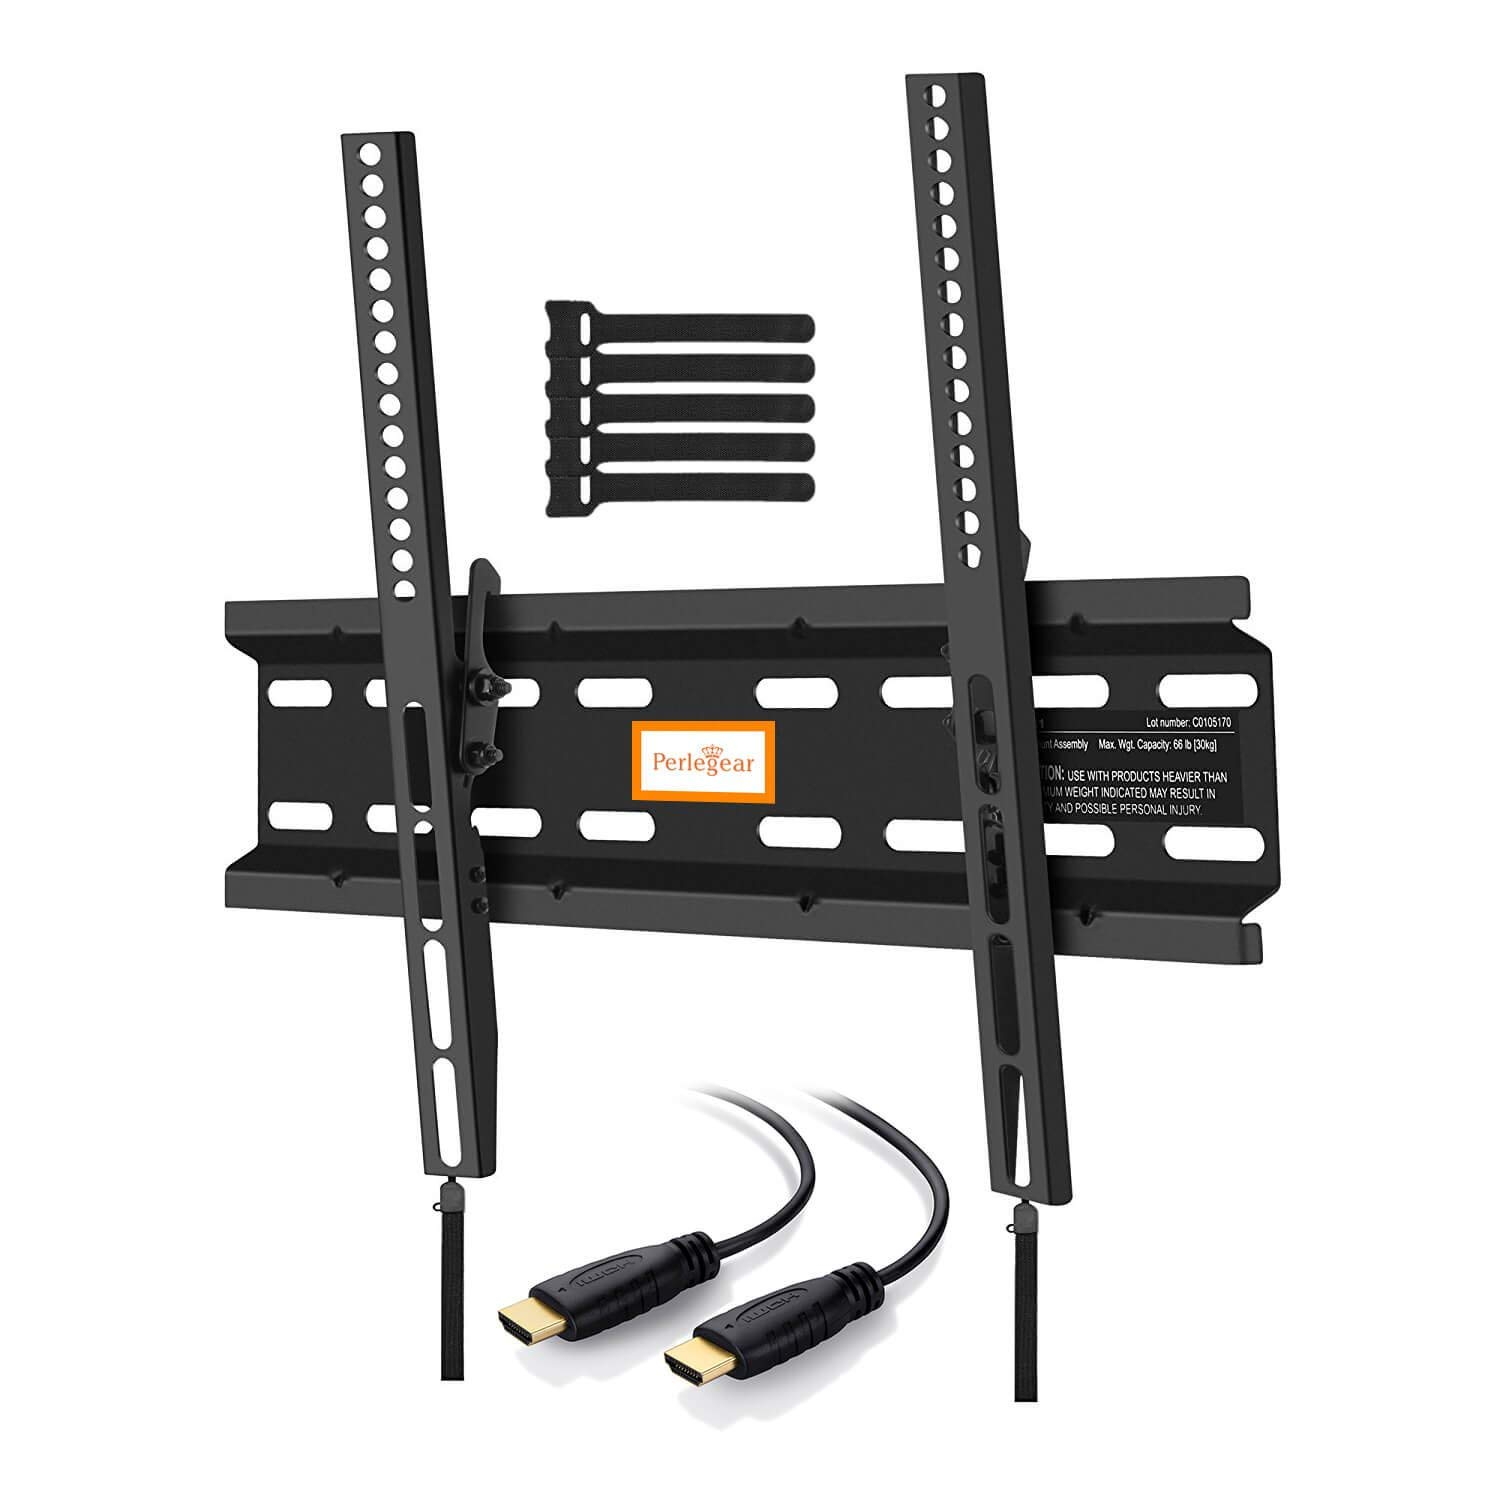 """Perlegear TV Tilt Wall Bracket, Reduces Glare & Adds Space To Your Home! Safely Holds 30KG & Fits Most 23""""-55"""" TVs! Tilt TV Wall Mount Improves Viewing Angles & Reduces Neck Pain! Easy Assembly, Quality Tilt Wall Bracket!"""